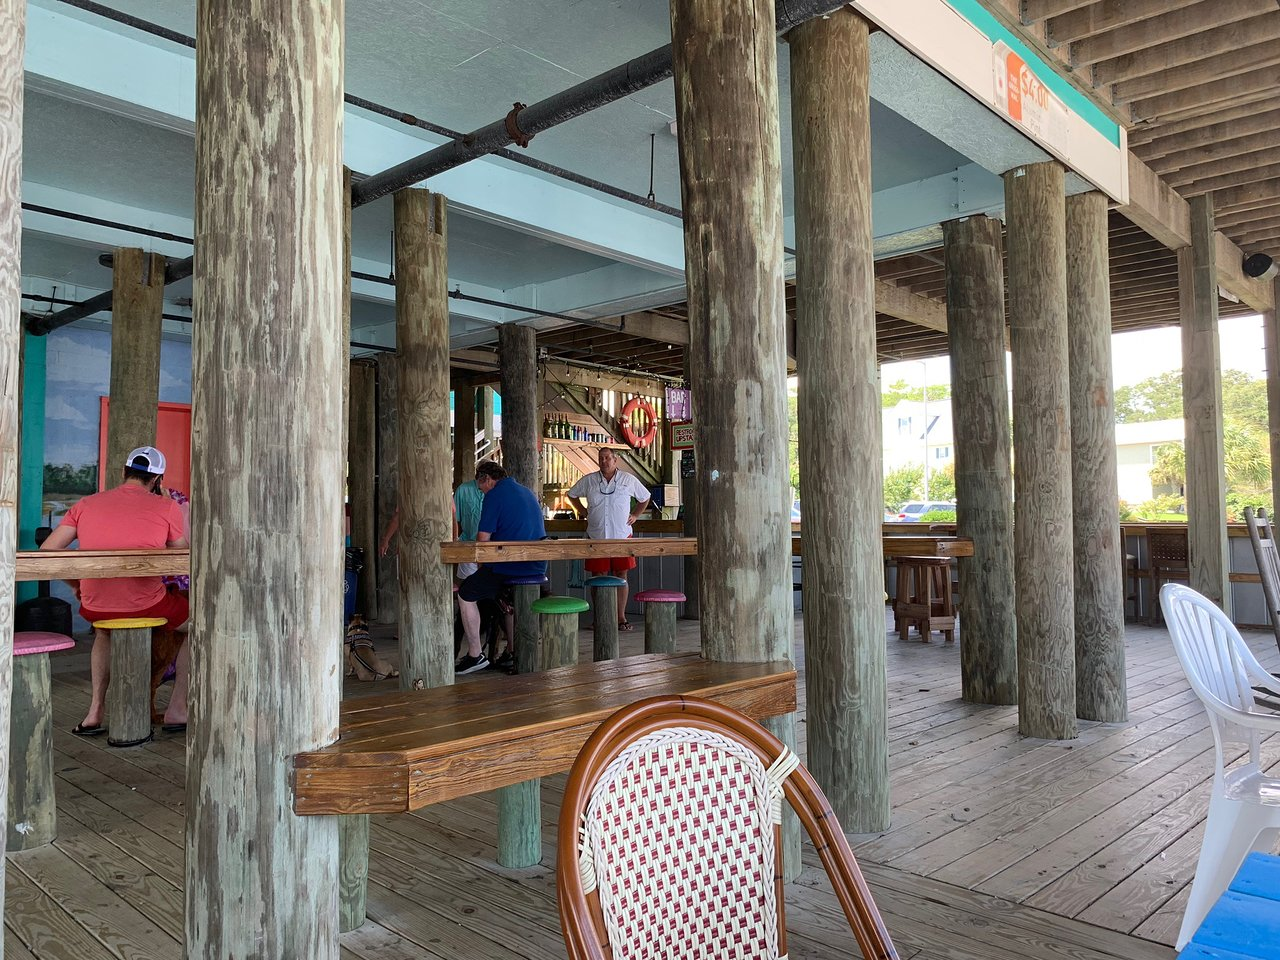 Inlet View Bar Grill Water View Picture Of Inlet View Bar And Grill Shallotte Tripadvisor